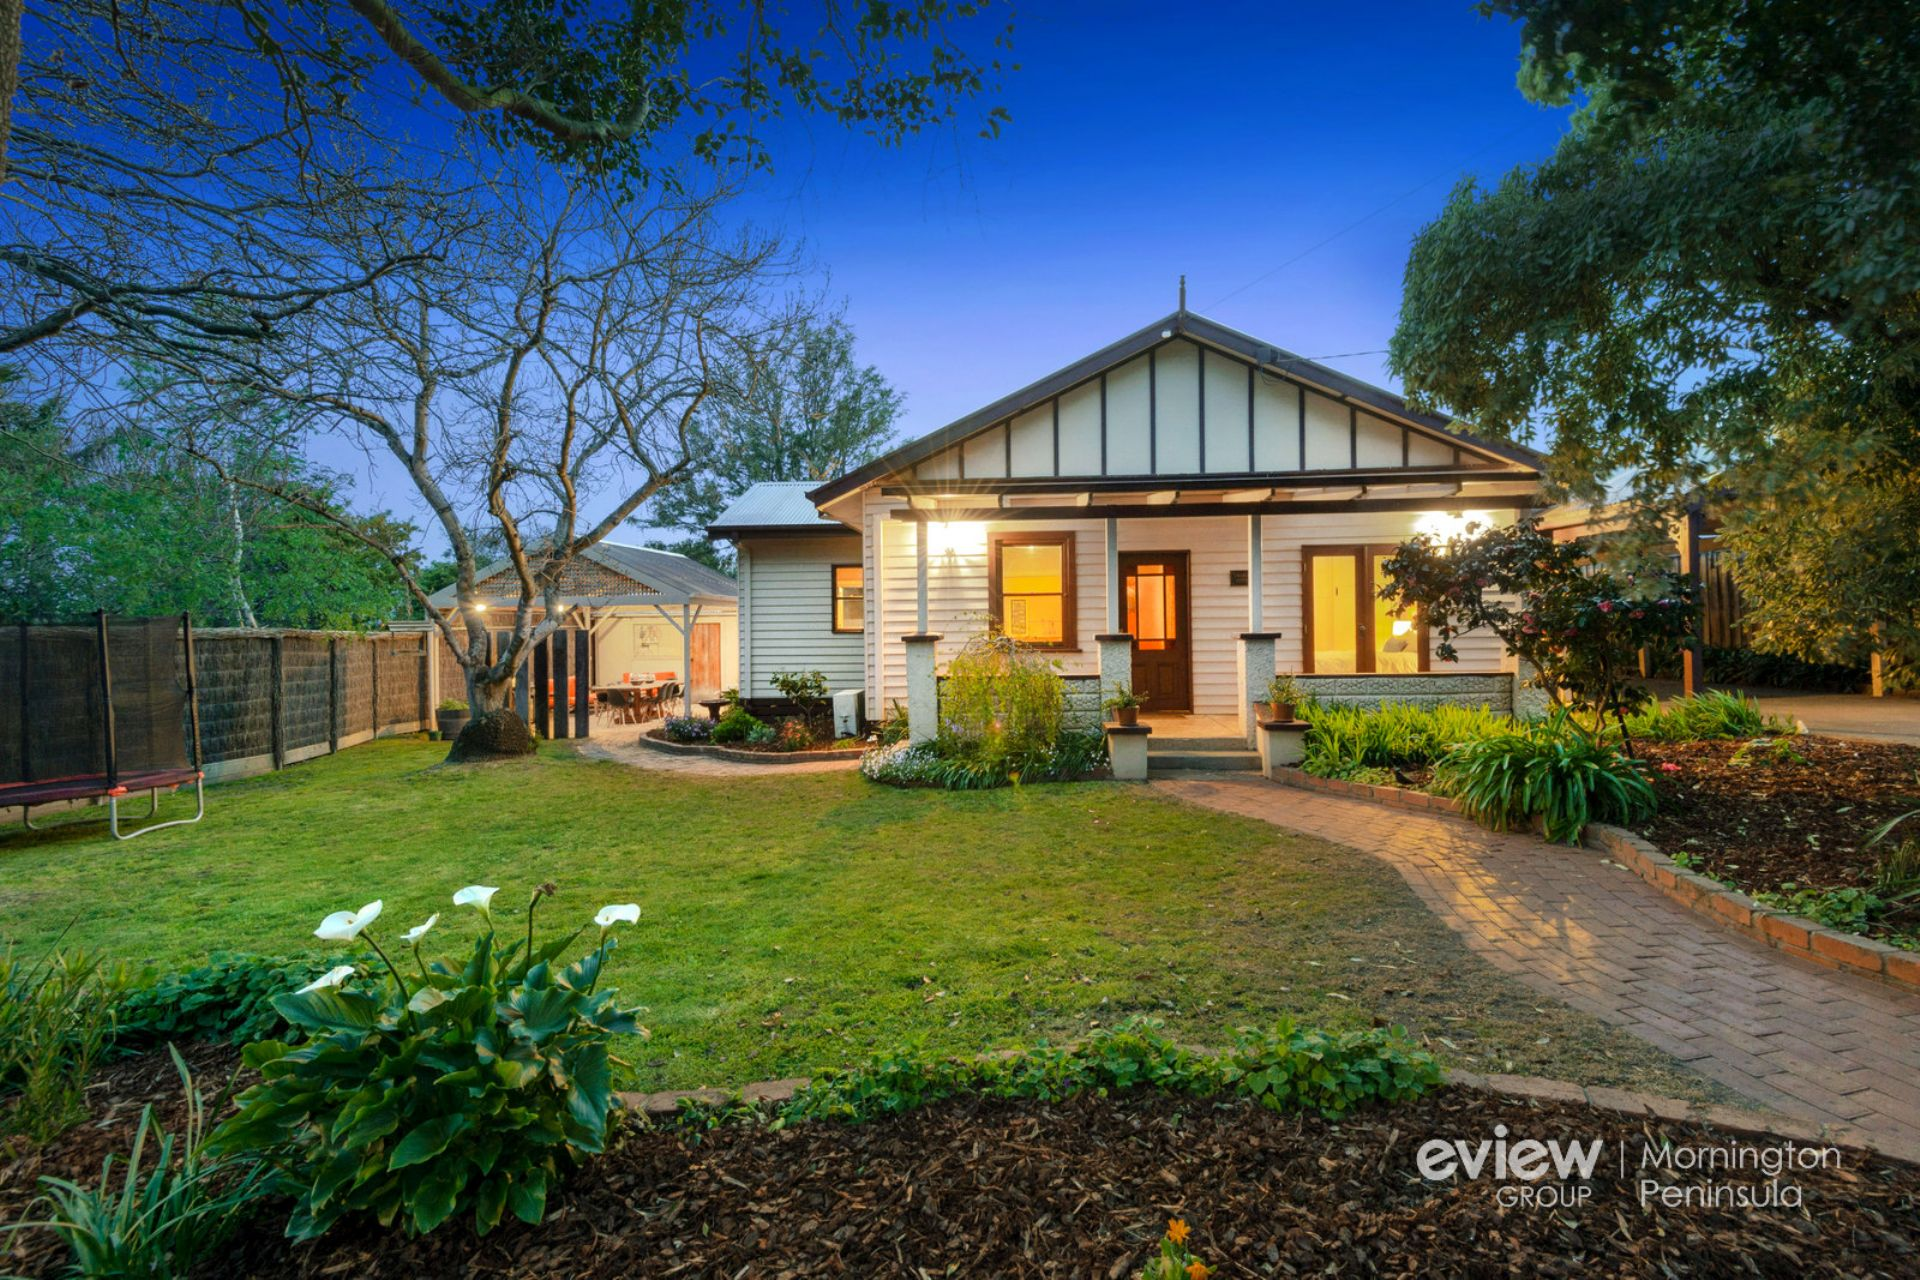 130 Bentons Road, MOUNT MARTHA, VIC, 3934 - Image